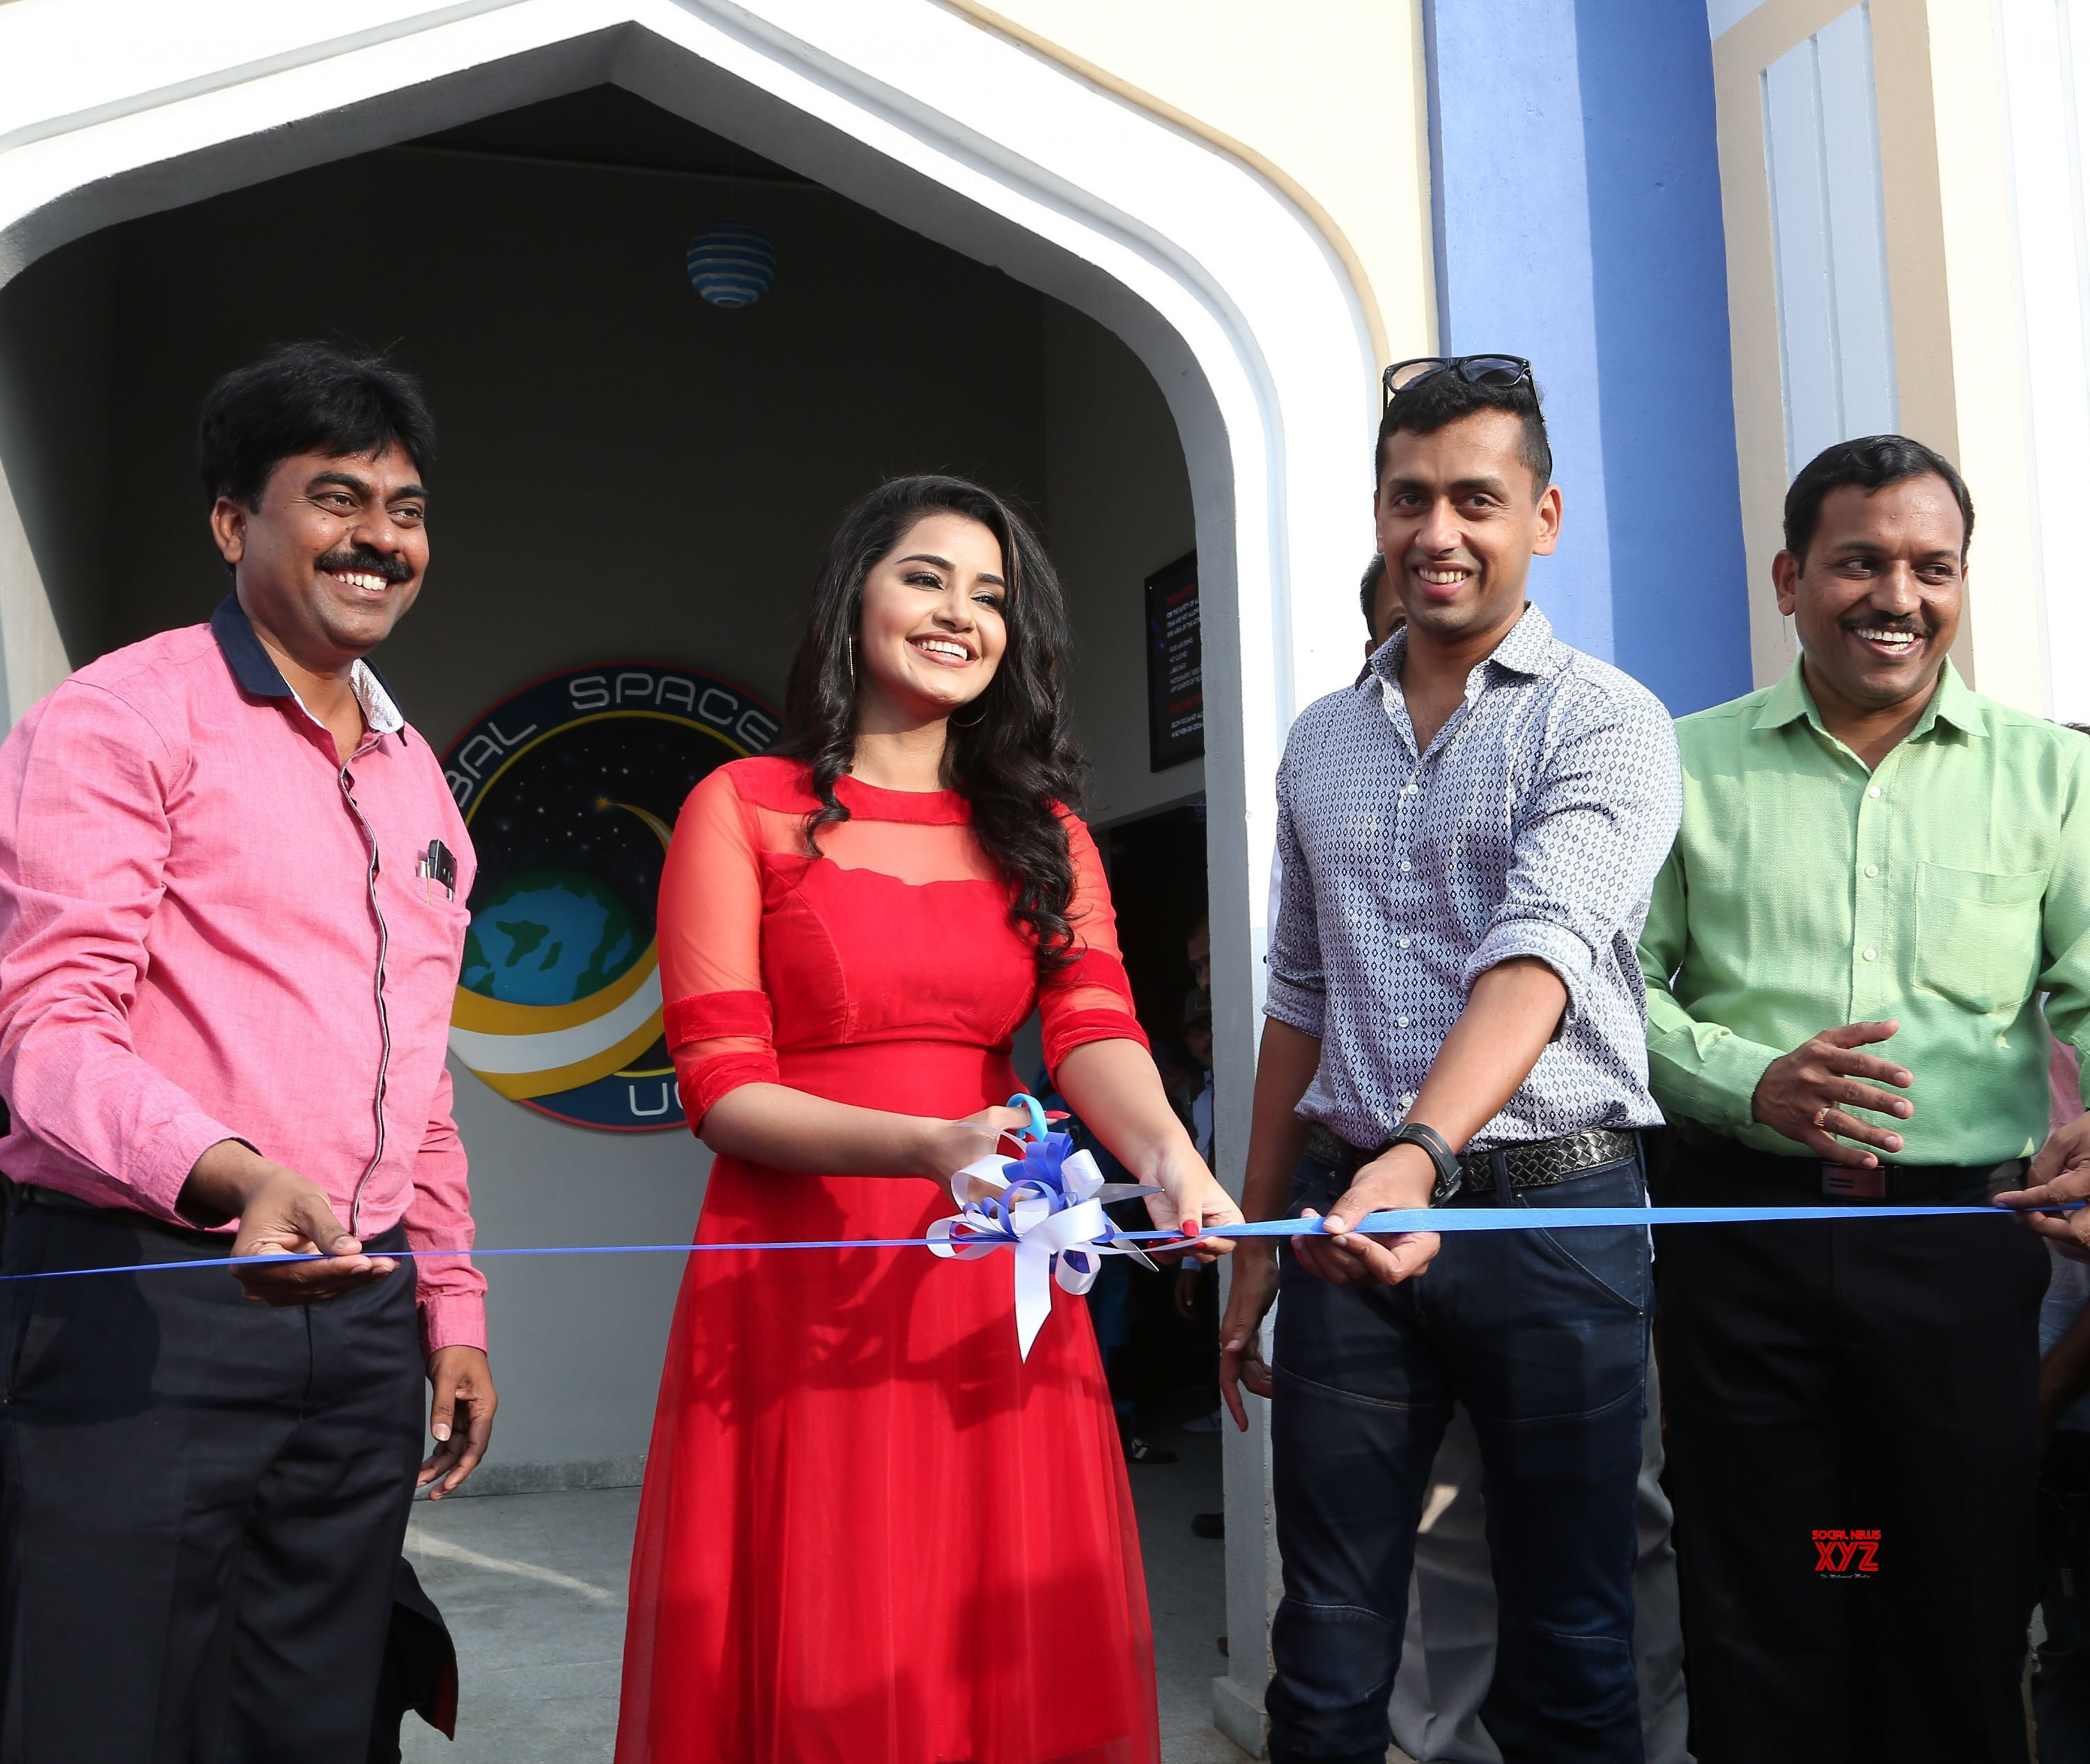 Anupama Parameswaran unveiled India's first space flying experience ride at Wonderla Hyderabad